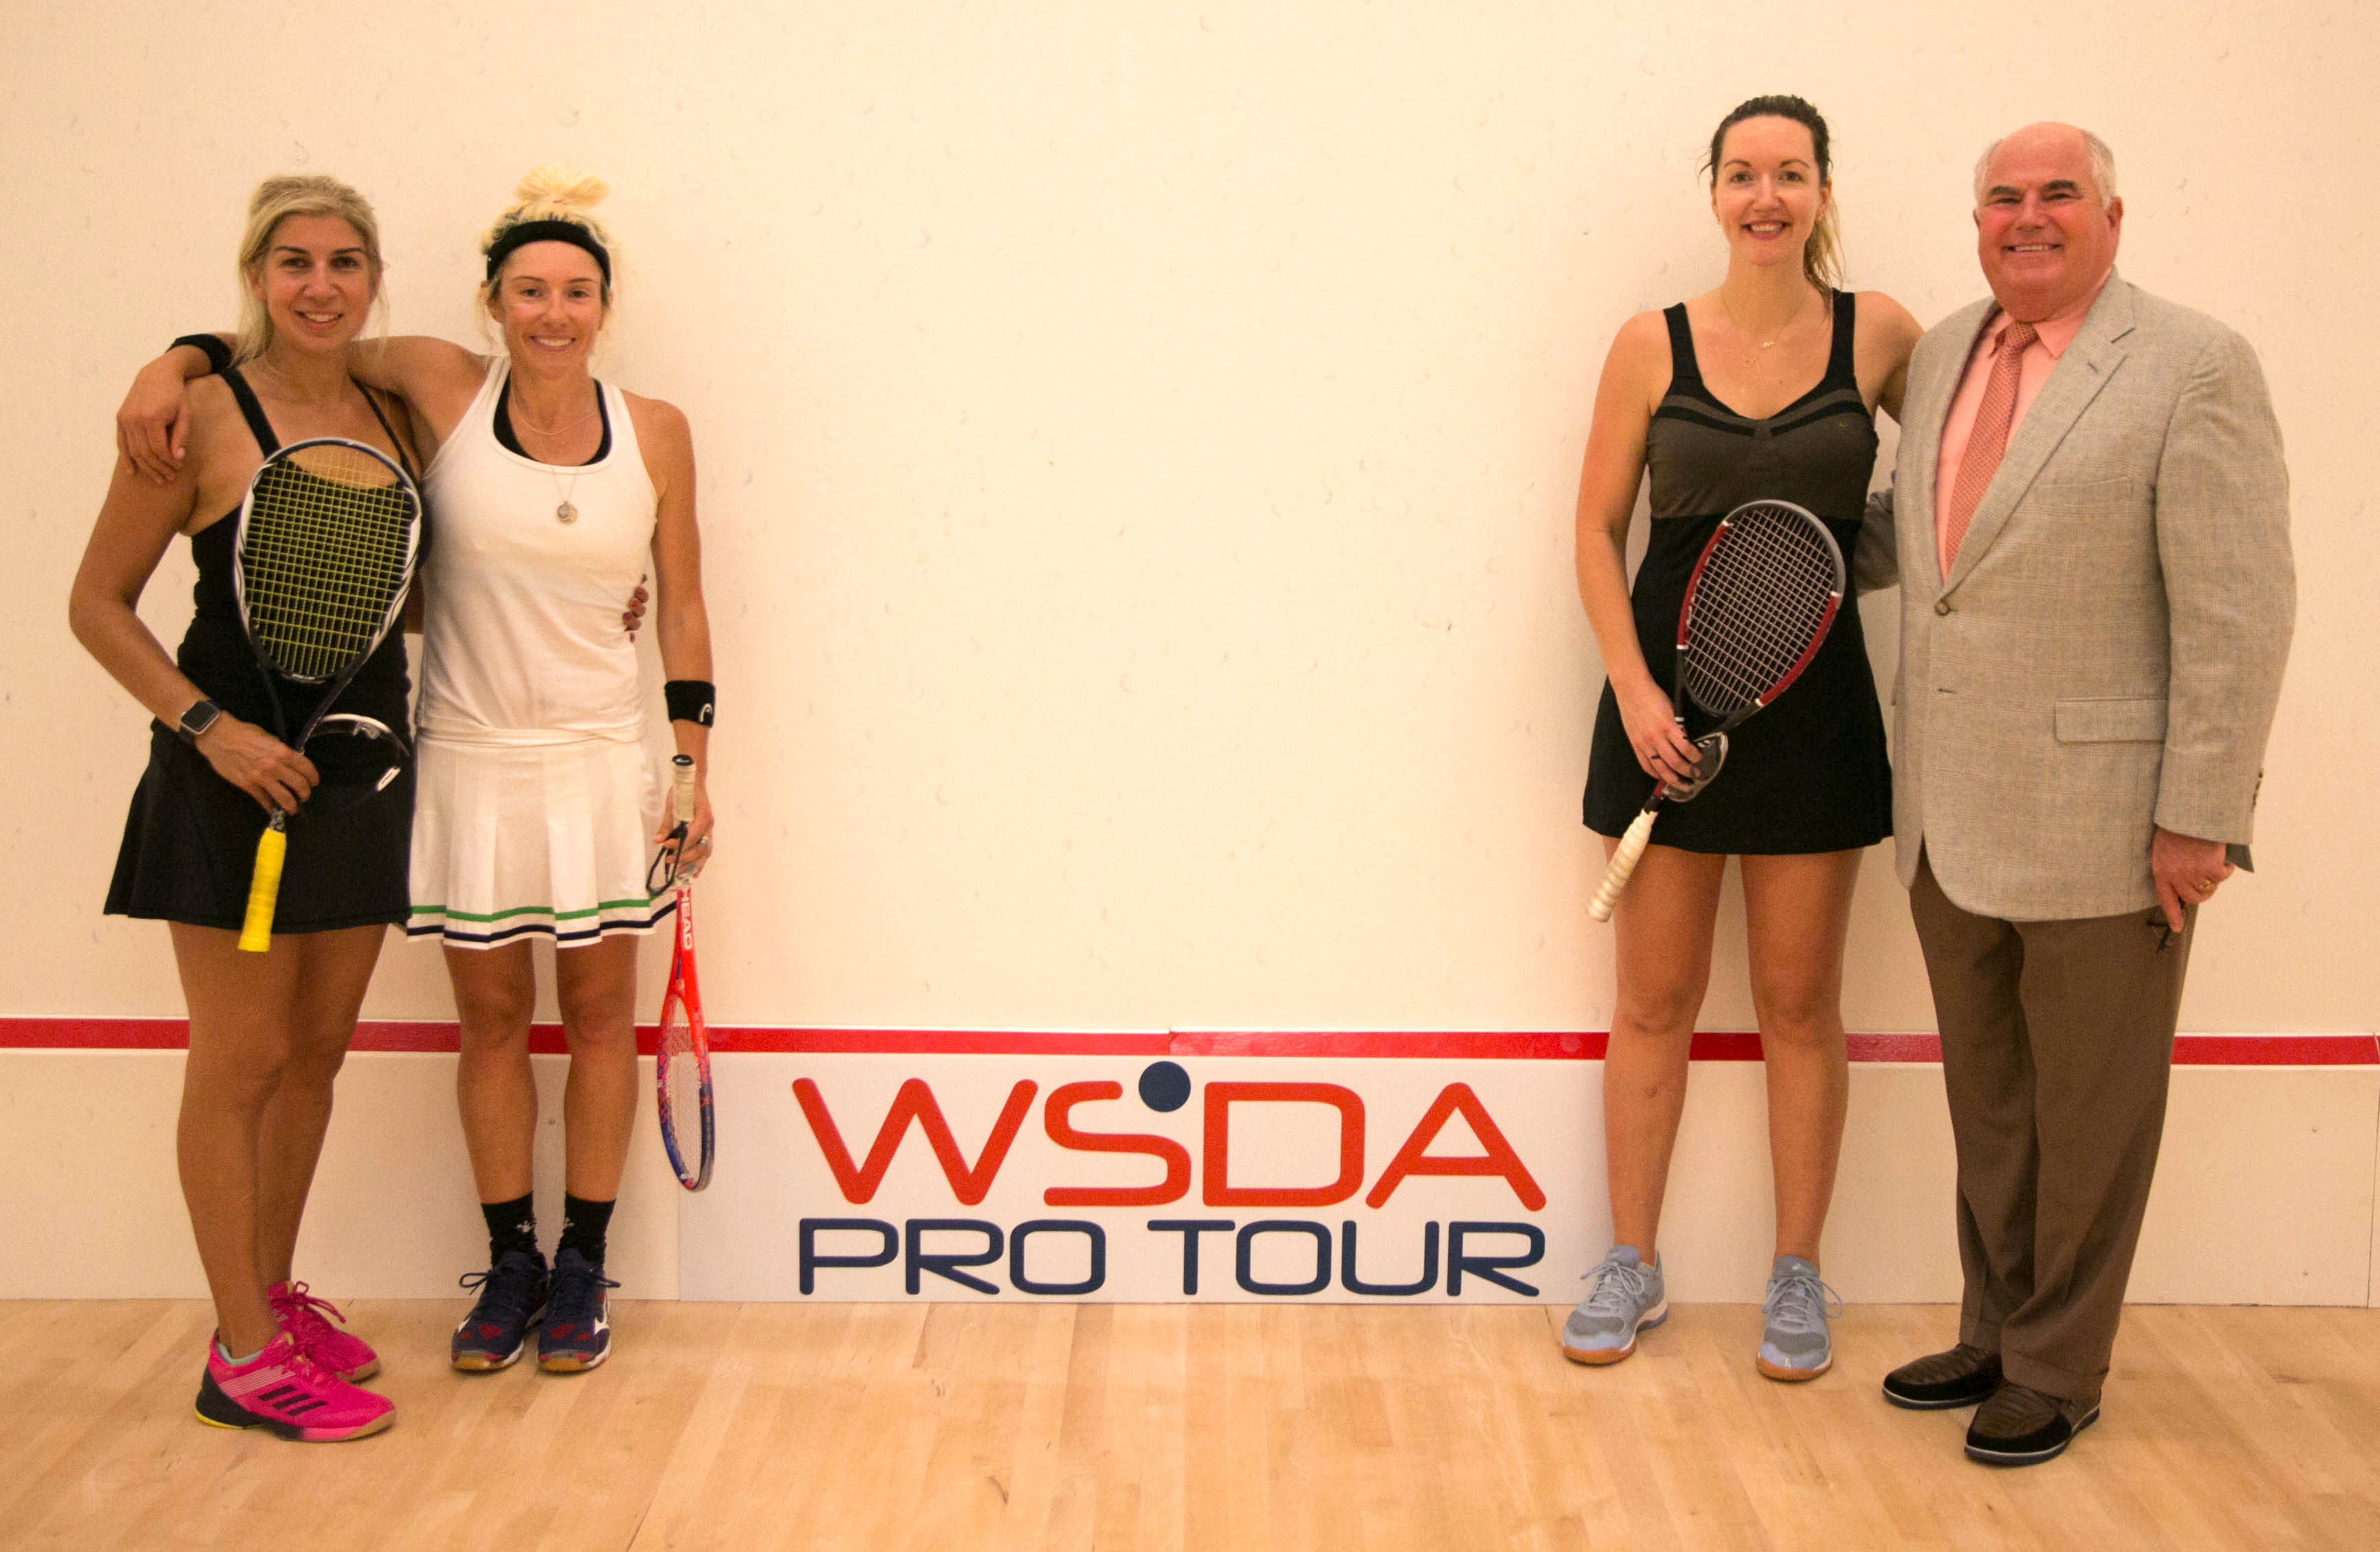 Oracle NetSuite Open Celebrates WSDA Sponsorship With Doubles Exhibition